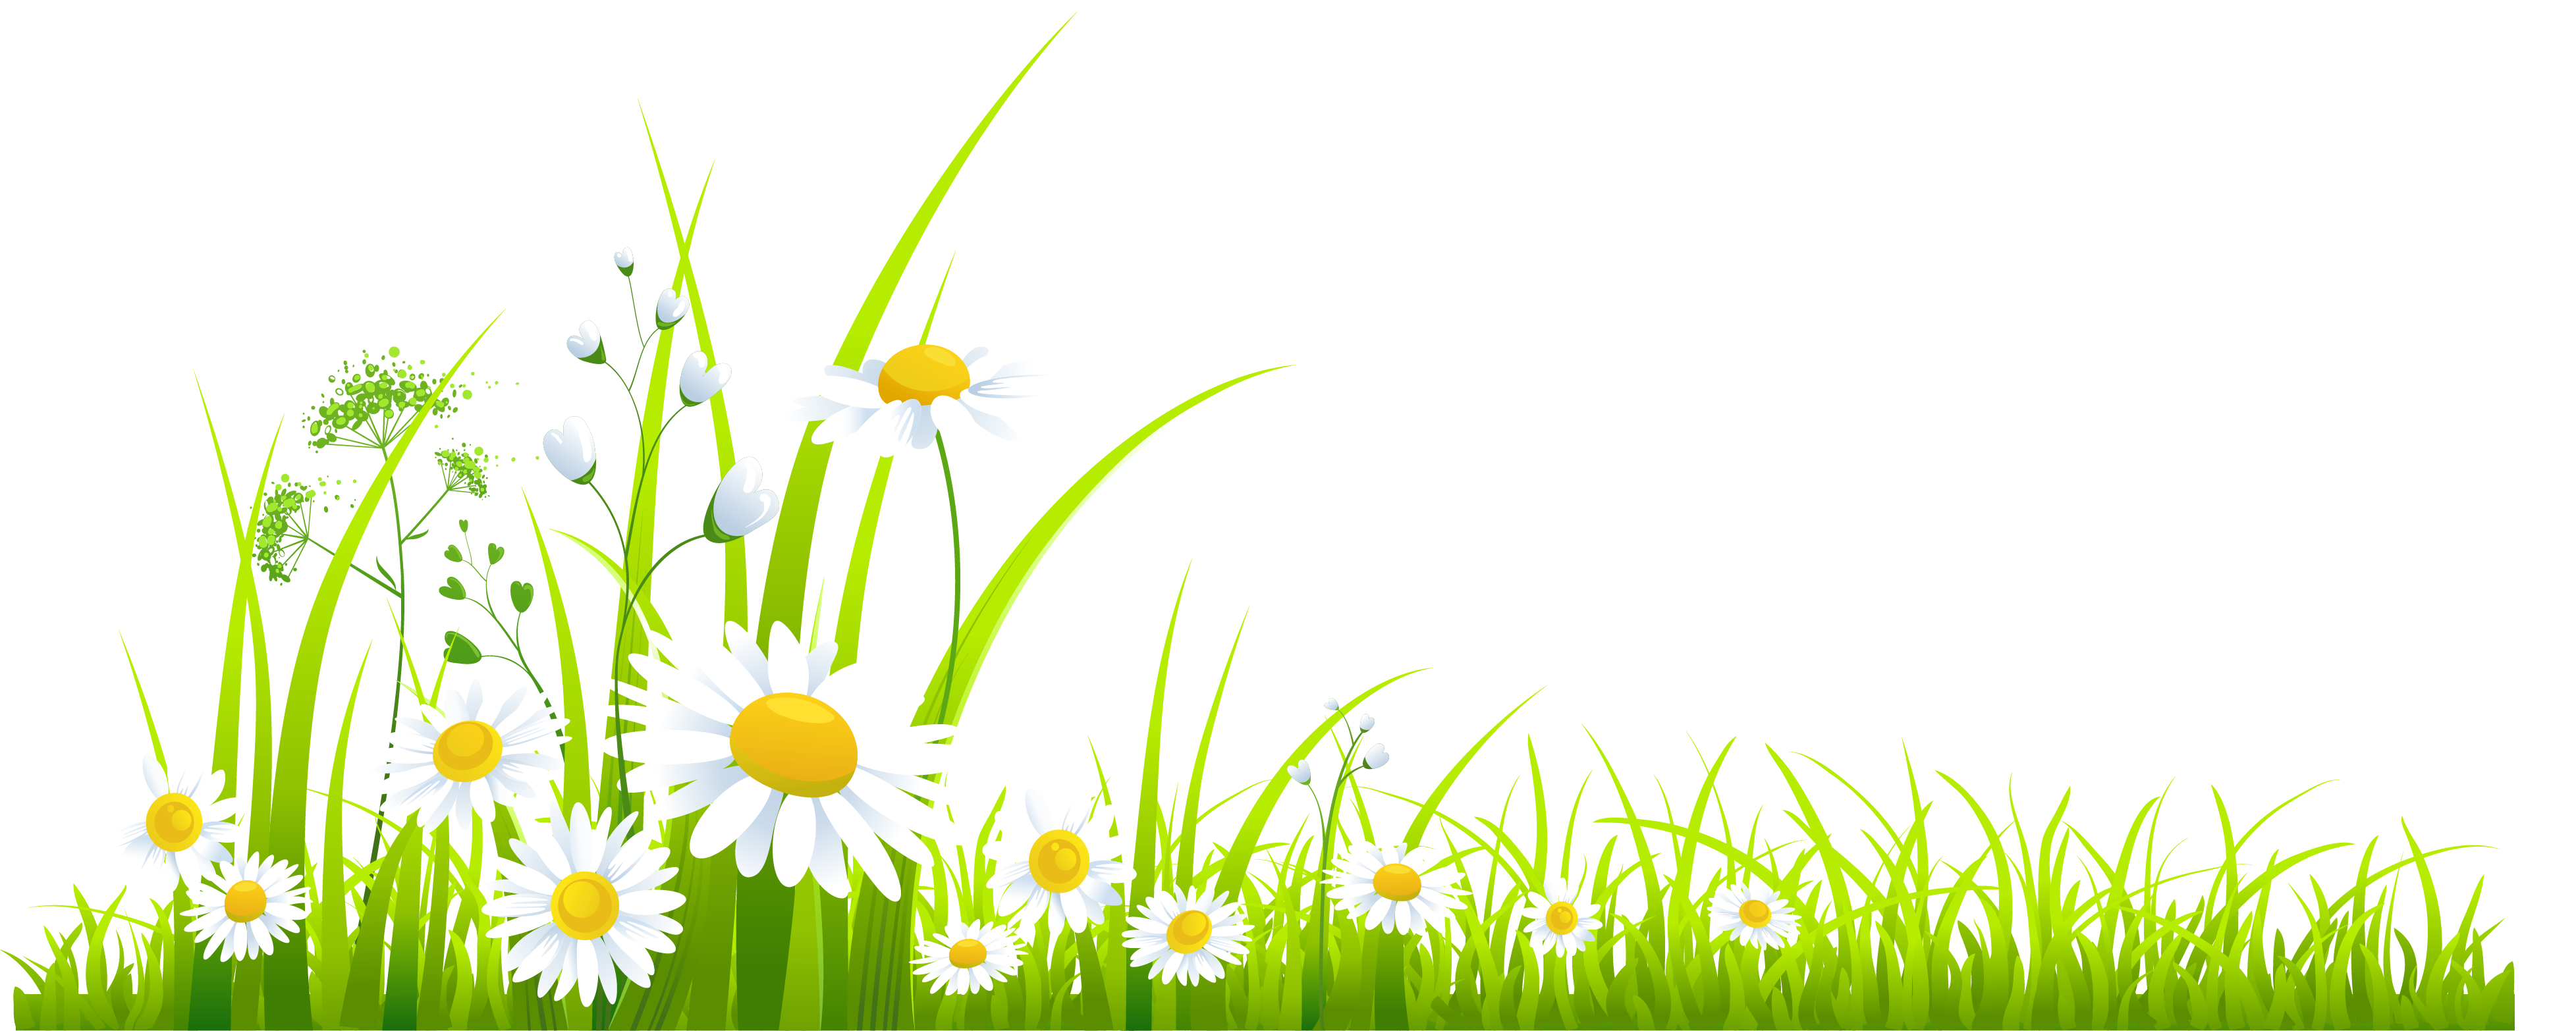 Clipart png spring. Grass with camomile gallery